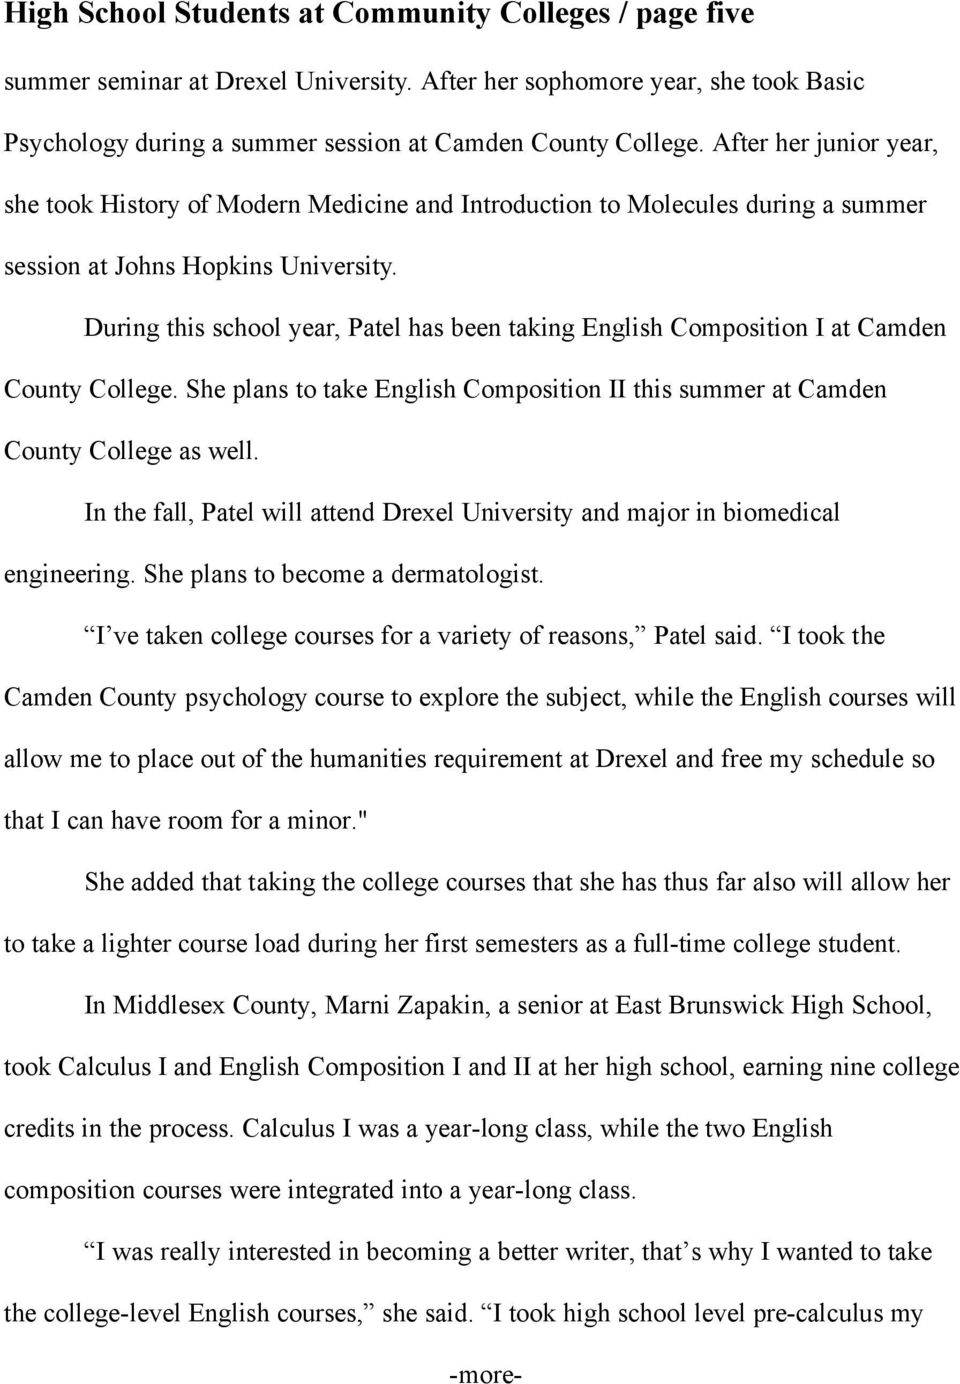 During this school year, Patel has been taking English Composition I at Camden County College. She plans to take English Composition II this summer at Camden County College as well.